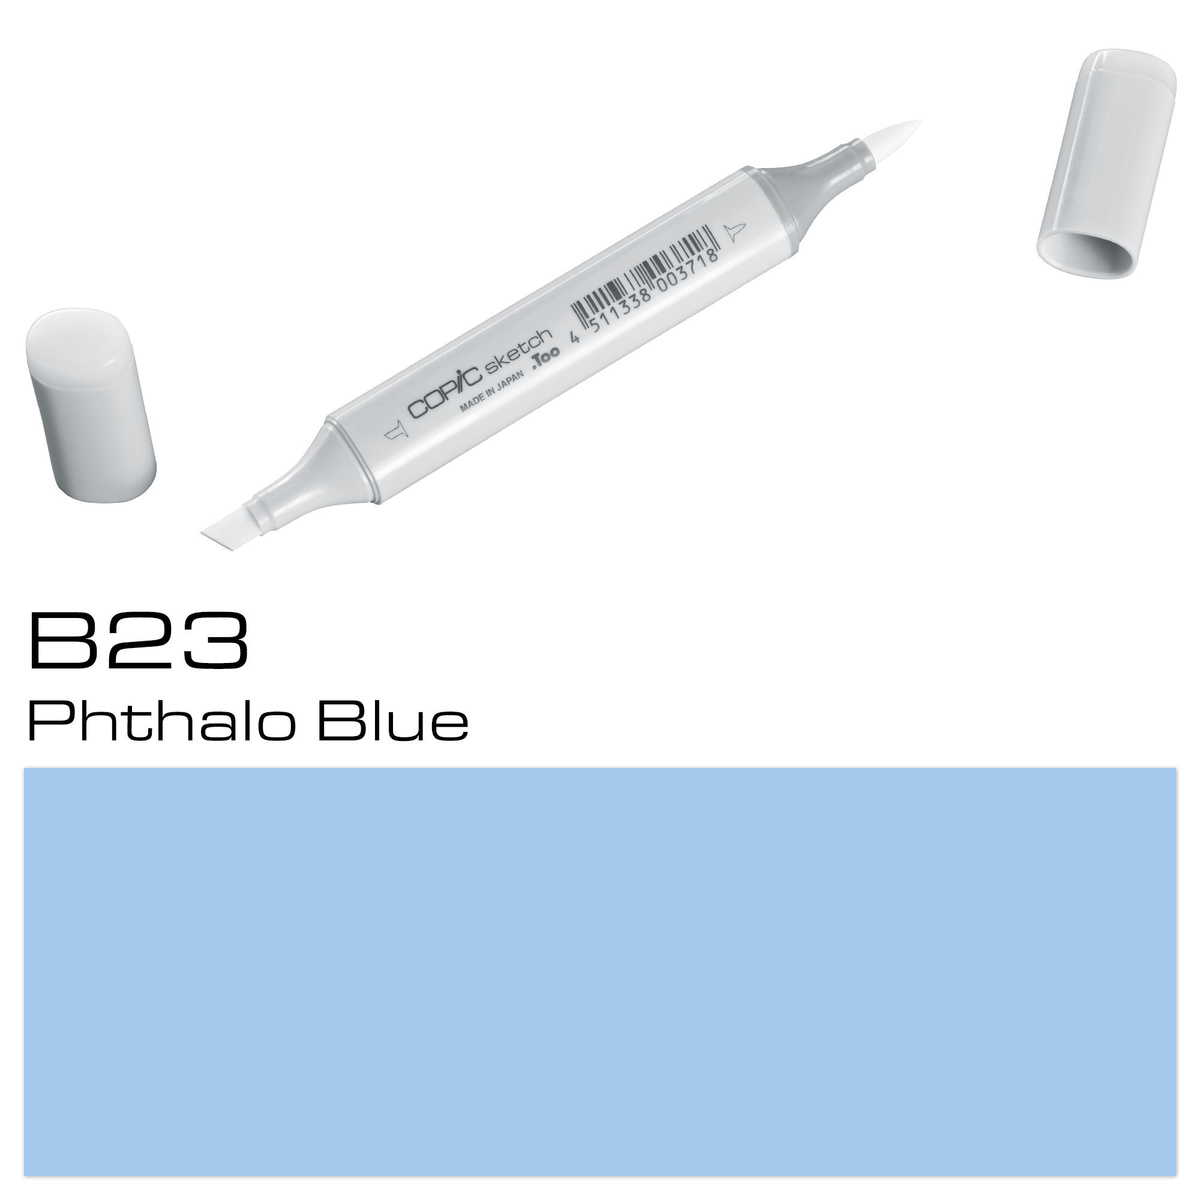 Copic Sketch B23 phthalo blue